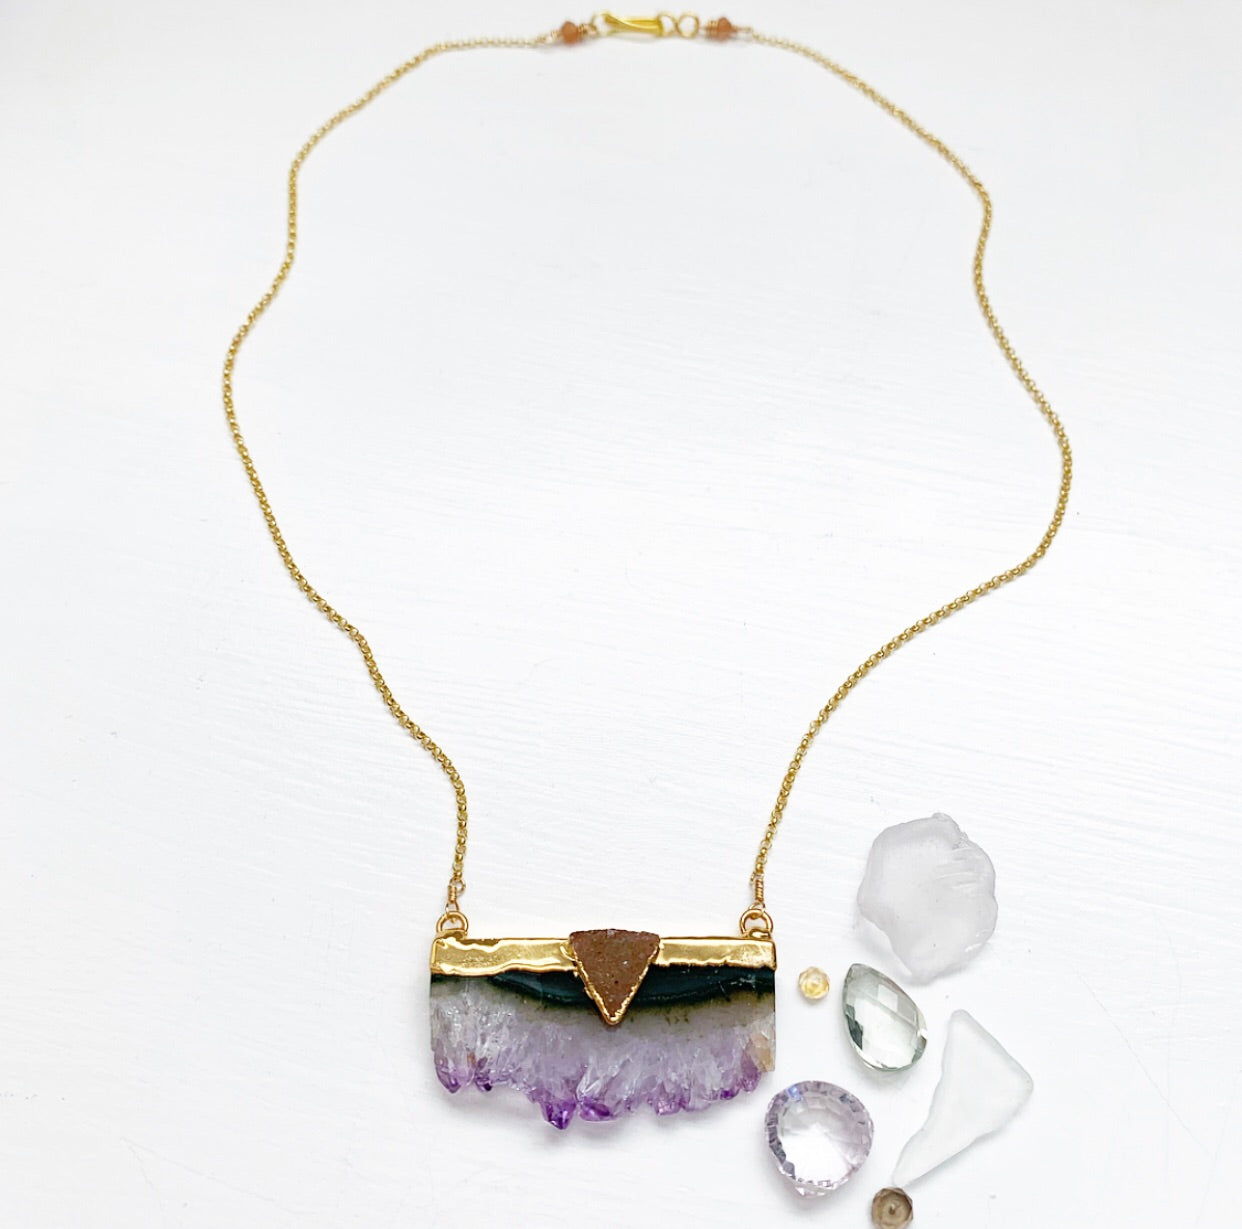 693-Amethyst Stalactite and Druzy Necklace